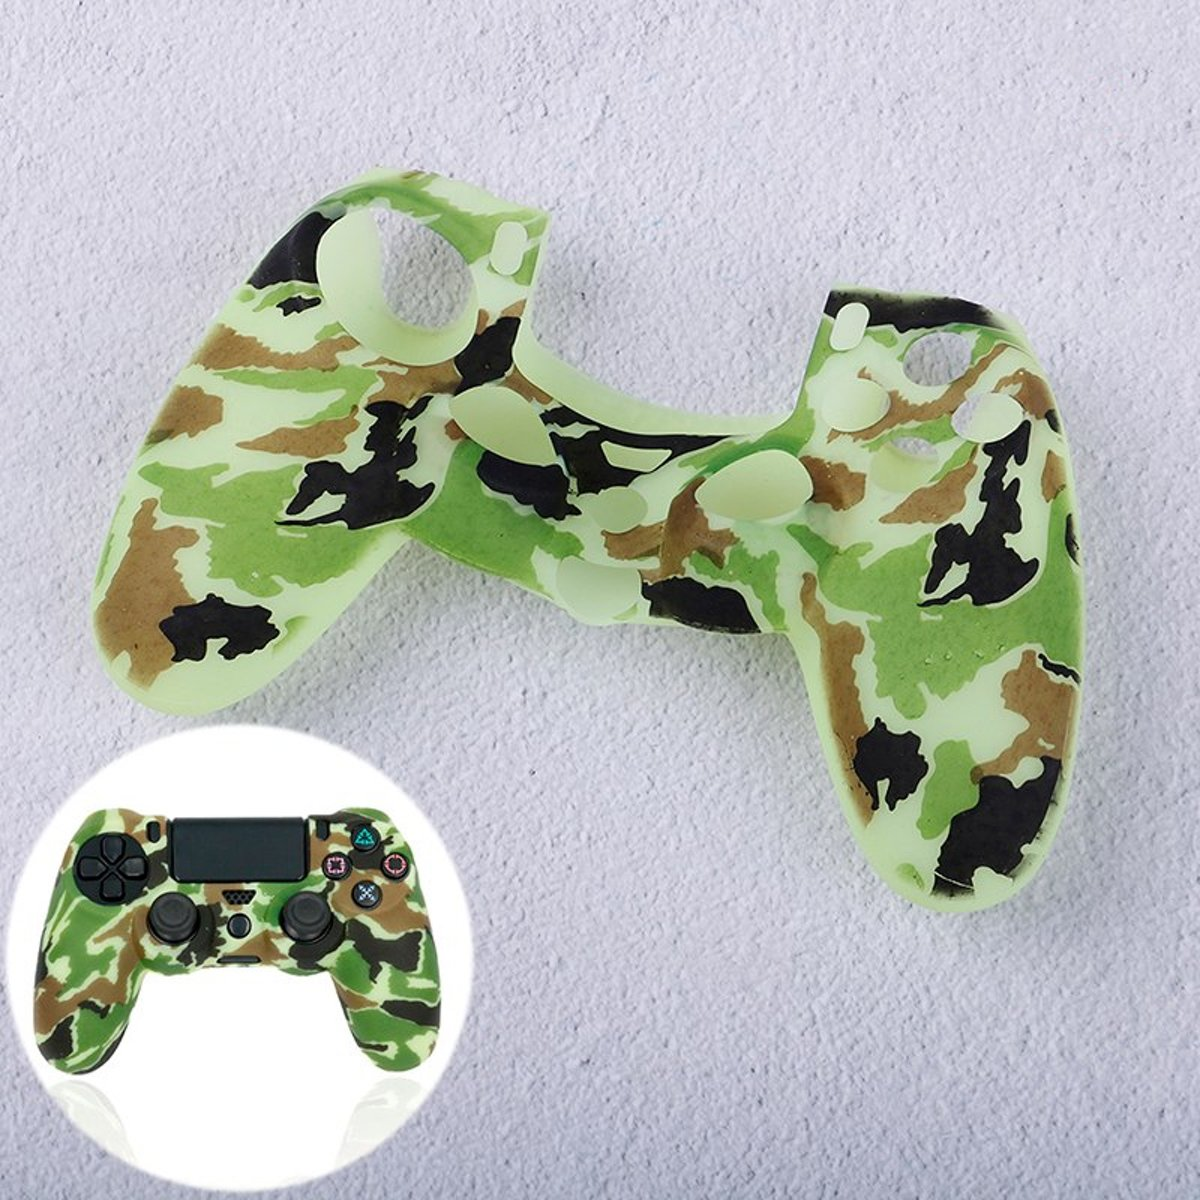 PS4   Protector Siliconen - Camouflage Army Wit / Groen -